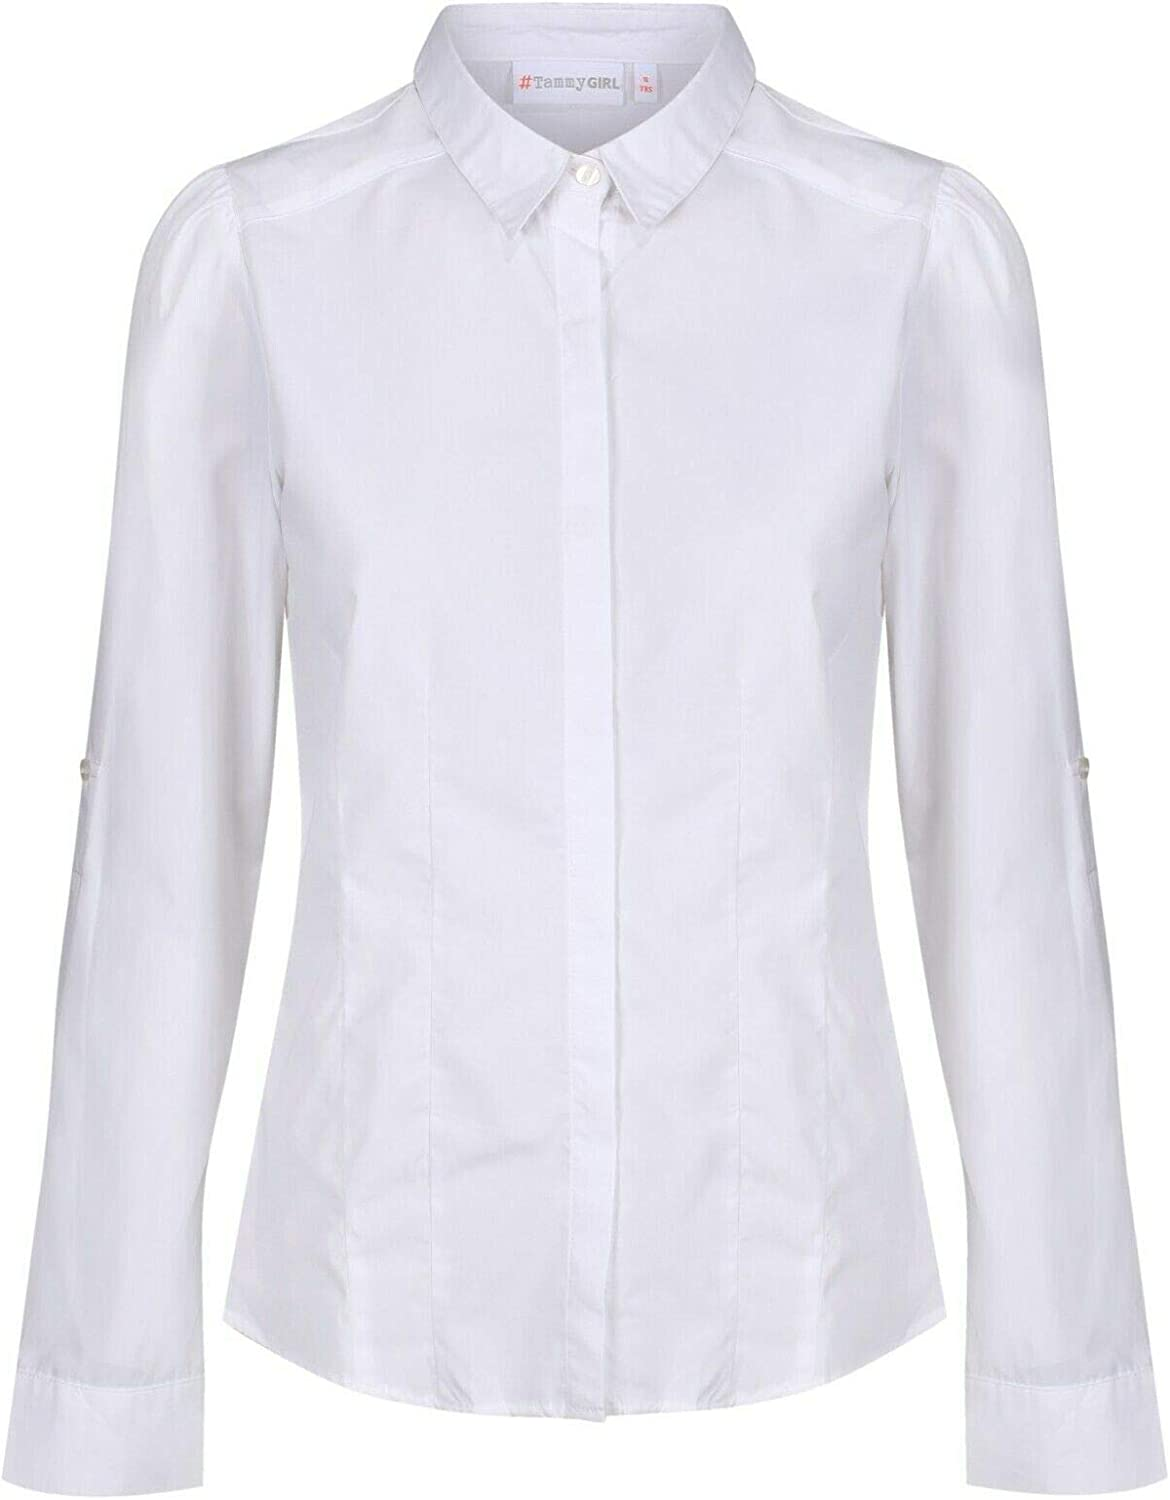 EX-BHS Tammy Girls School Shirt Blouse Ages 4-16y Long Sleeve Roll Up Sleeve Slim Fit